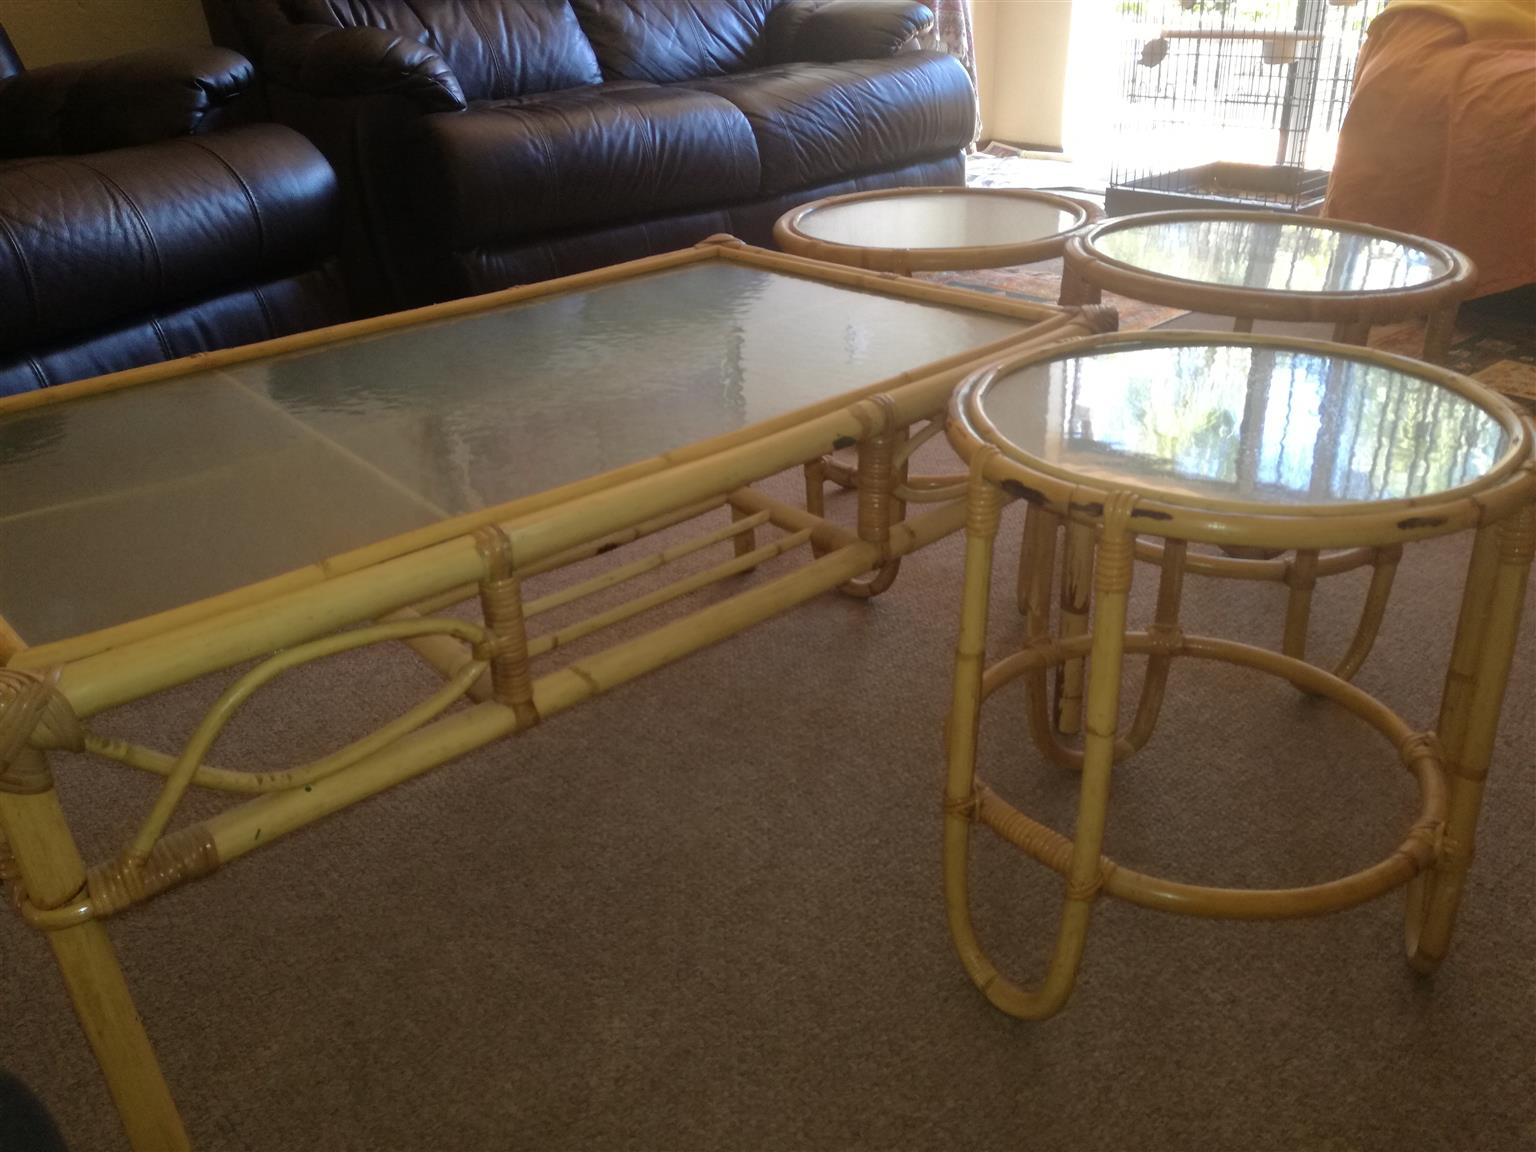 TABLE (CANE) WITH 3 SIDE TABLES